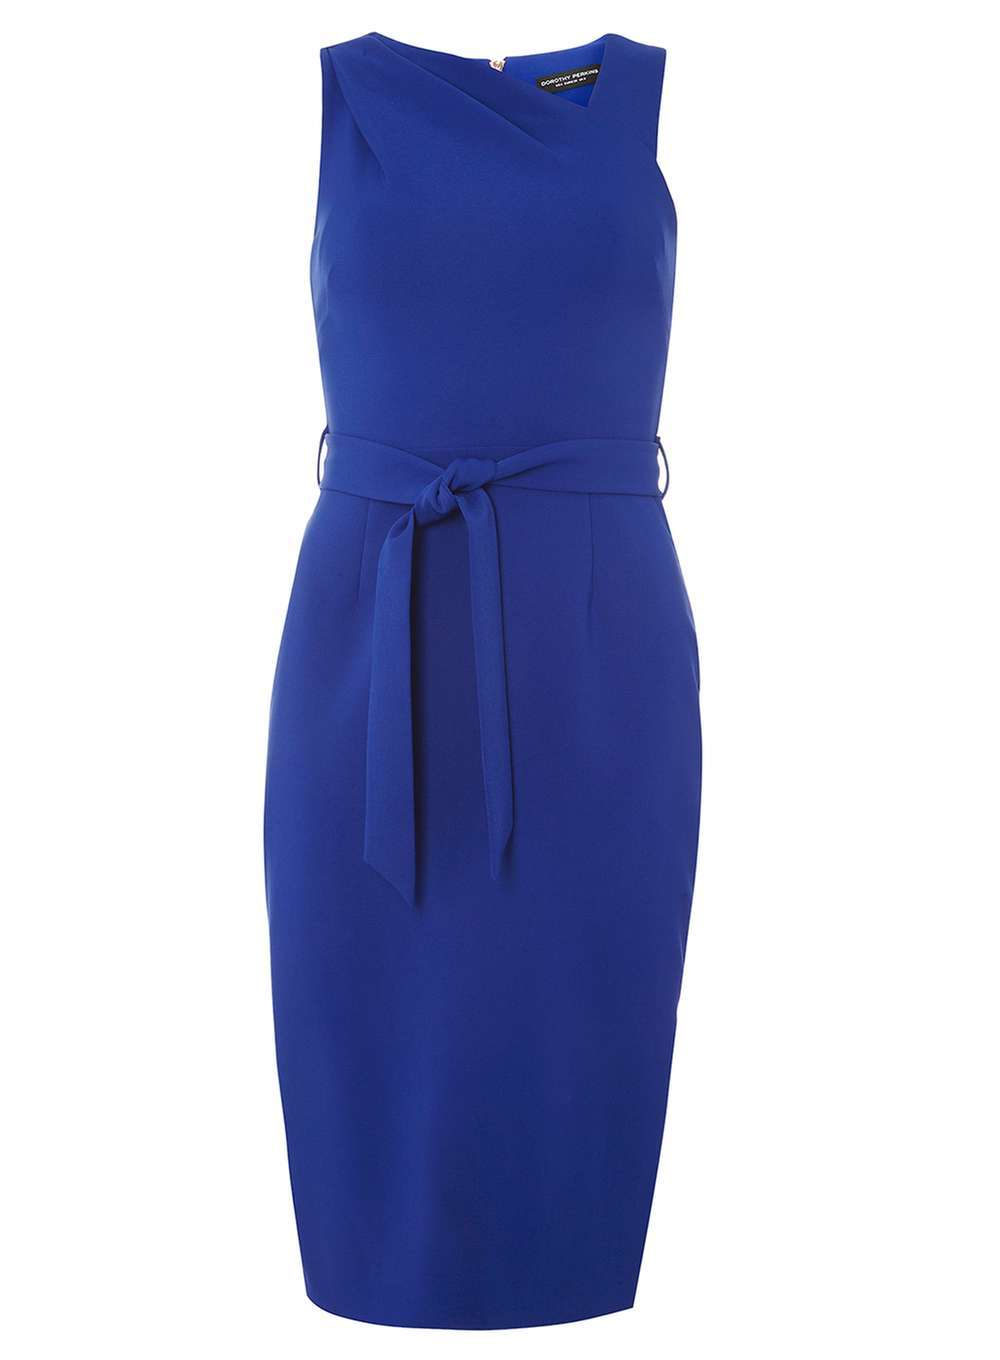 Womens Asymmetric Pencil Dress Cobalt - style: shift; length: below the knee; pattern: plain; sleeve style: sleeveless; neckline: asymmetric; waist detail: belted waist/tie at waist/drawstring; predominant colour: royal blue; occasions: evening; fit: body skimming; fibres: polyester/polyamide - stretch; sleeve length: sleeveless; pattern type: fabric; texture group: jersey - stretchy/drapey; season: a/w 2016; wardrobe: event